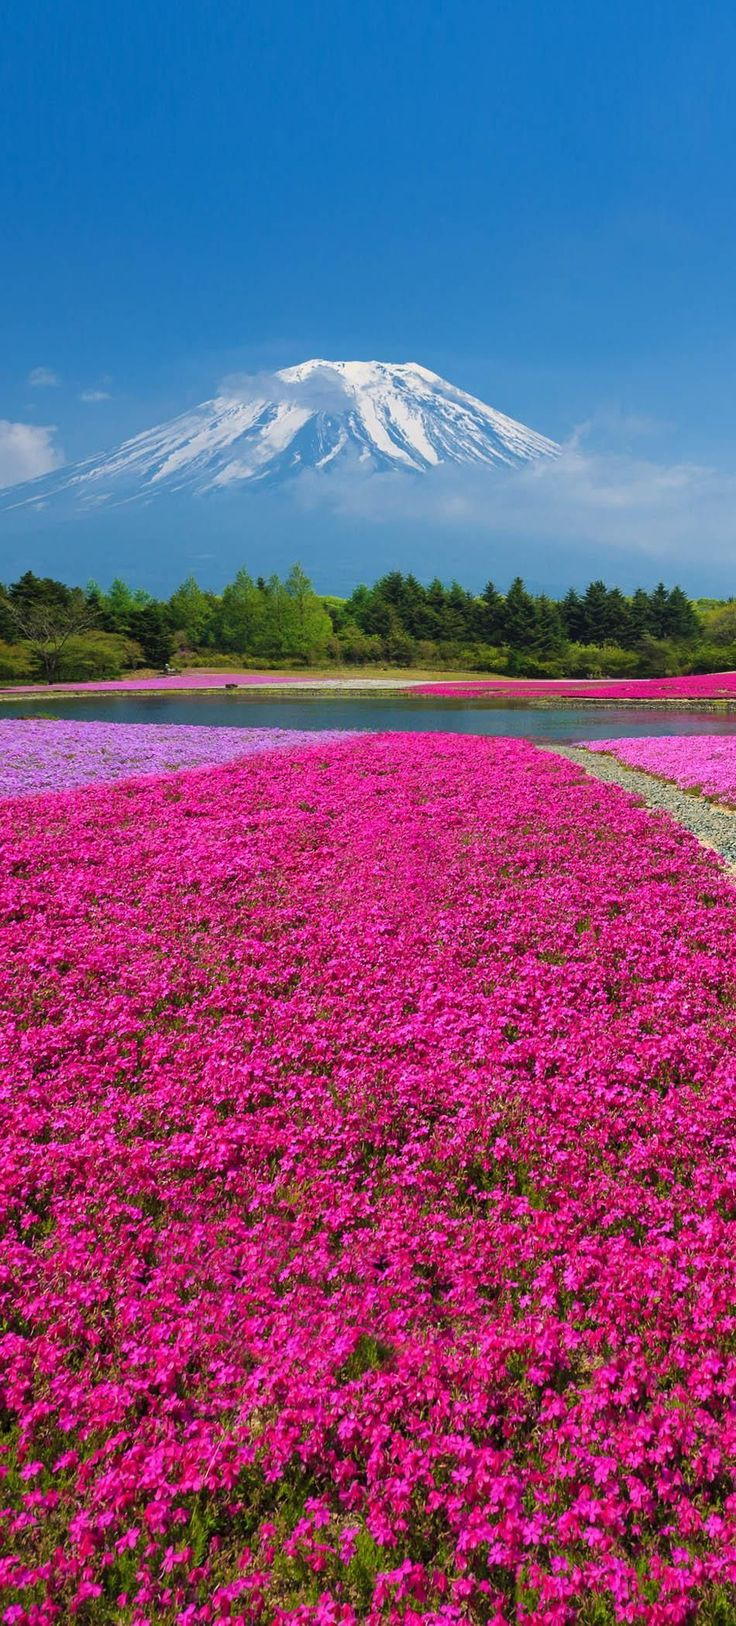 Mount Fuji with the field of pink moss at Shibazakura festival, Yamanashi, Japan   19 Reasons to Love Japan, an Unforgettable Travel Destination